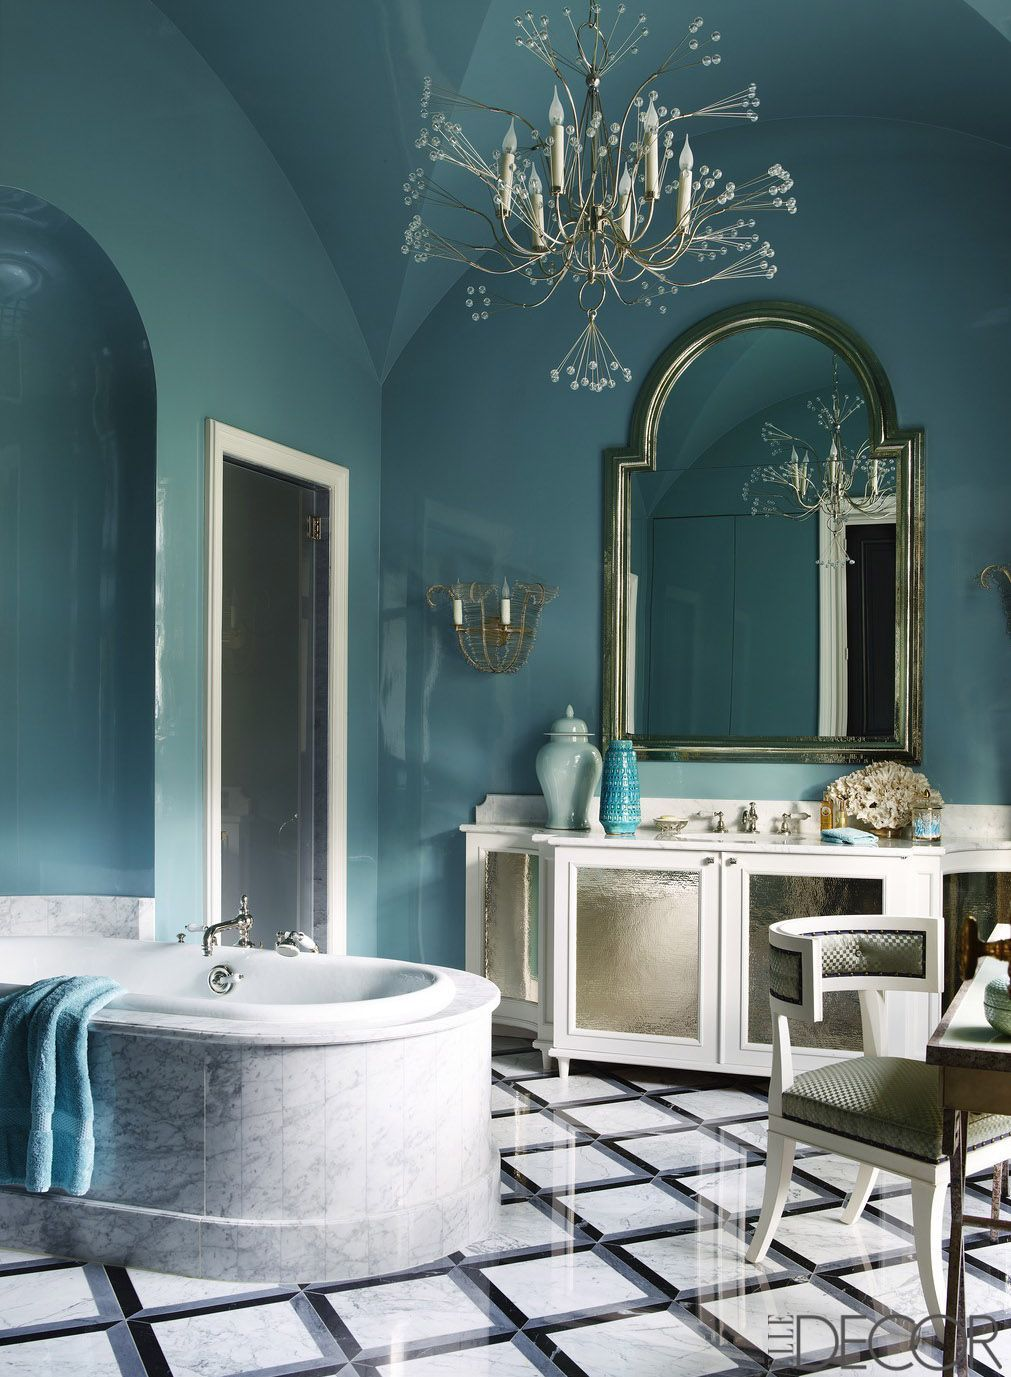 Best Color For Bathroom Wall Tiles choose the best design and color ...